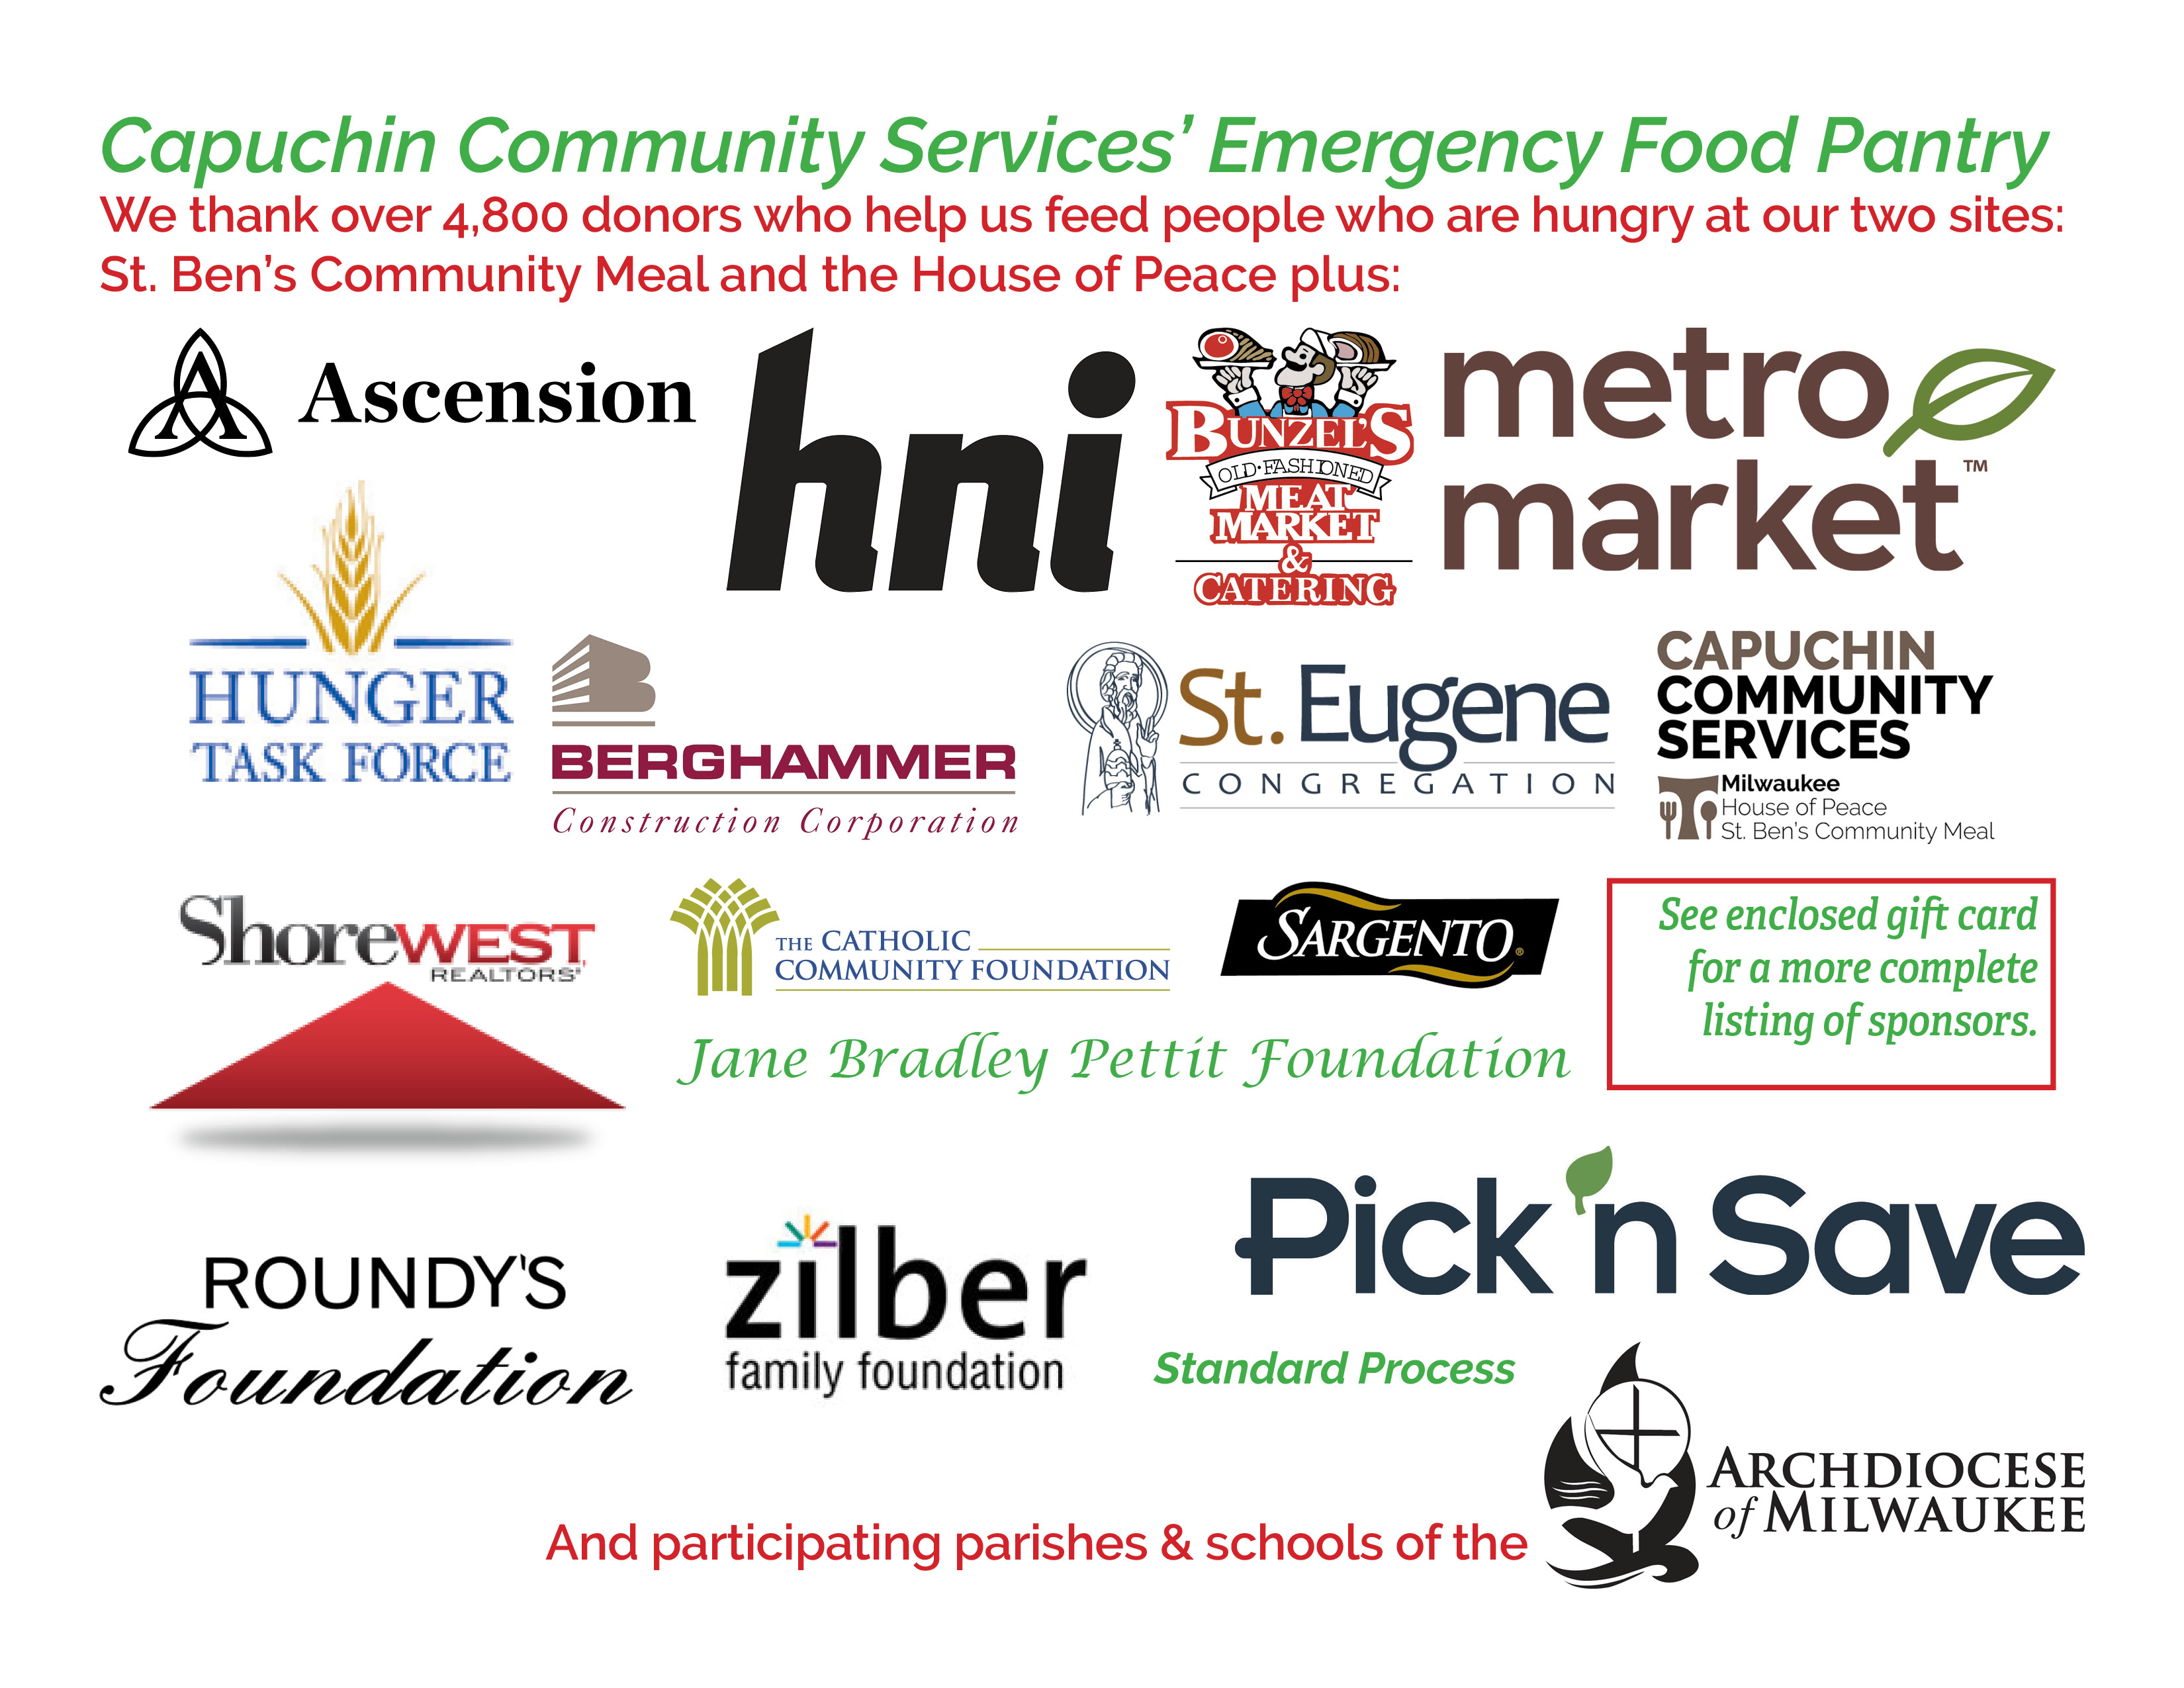 Thank you to the sponsors of the 2019 Capuchin Community Services Holiday Food Box Drive Sponsors